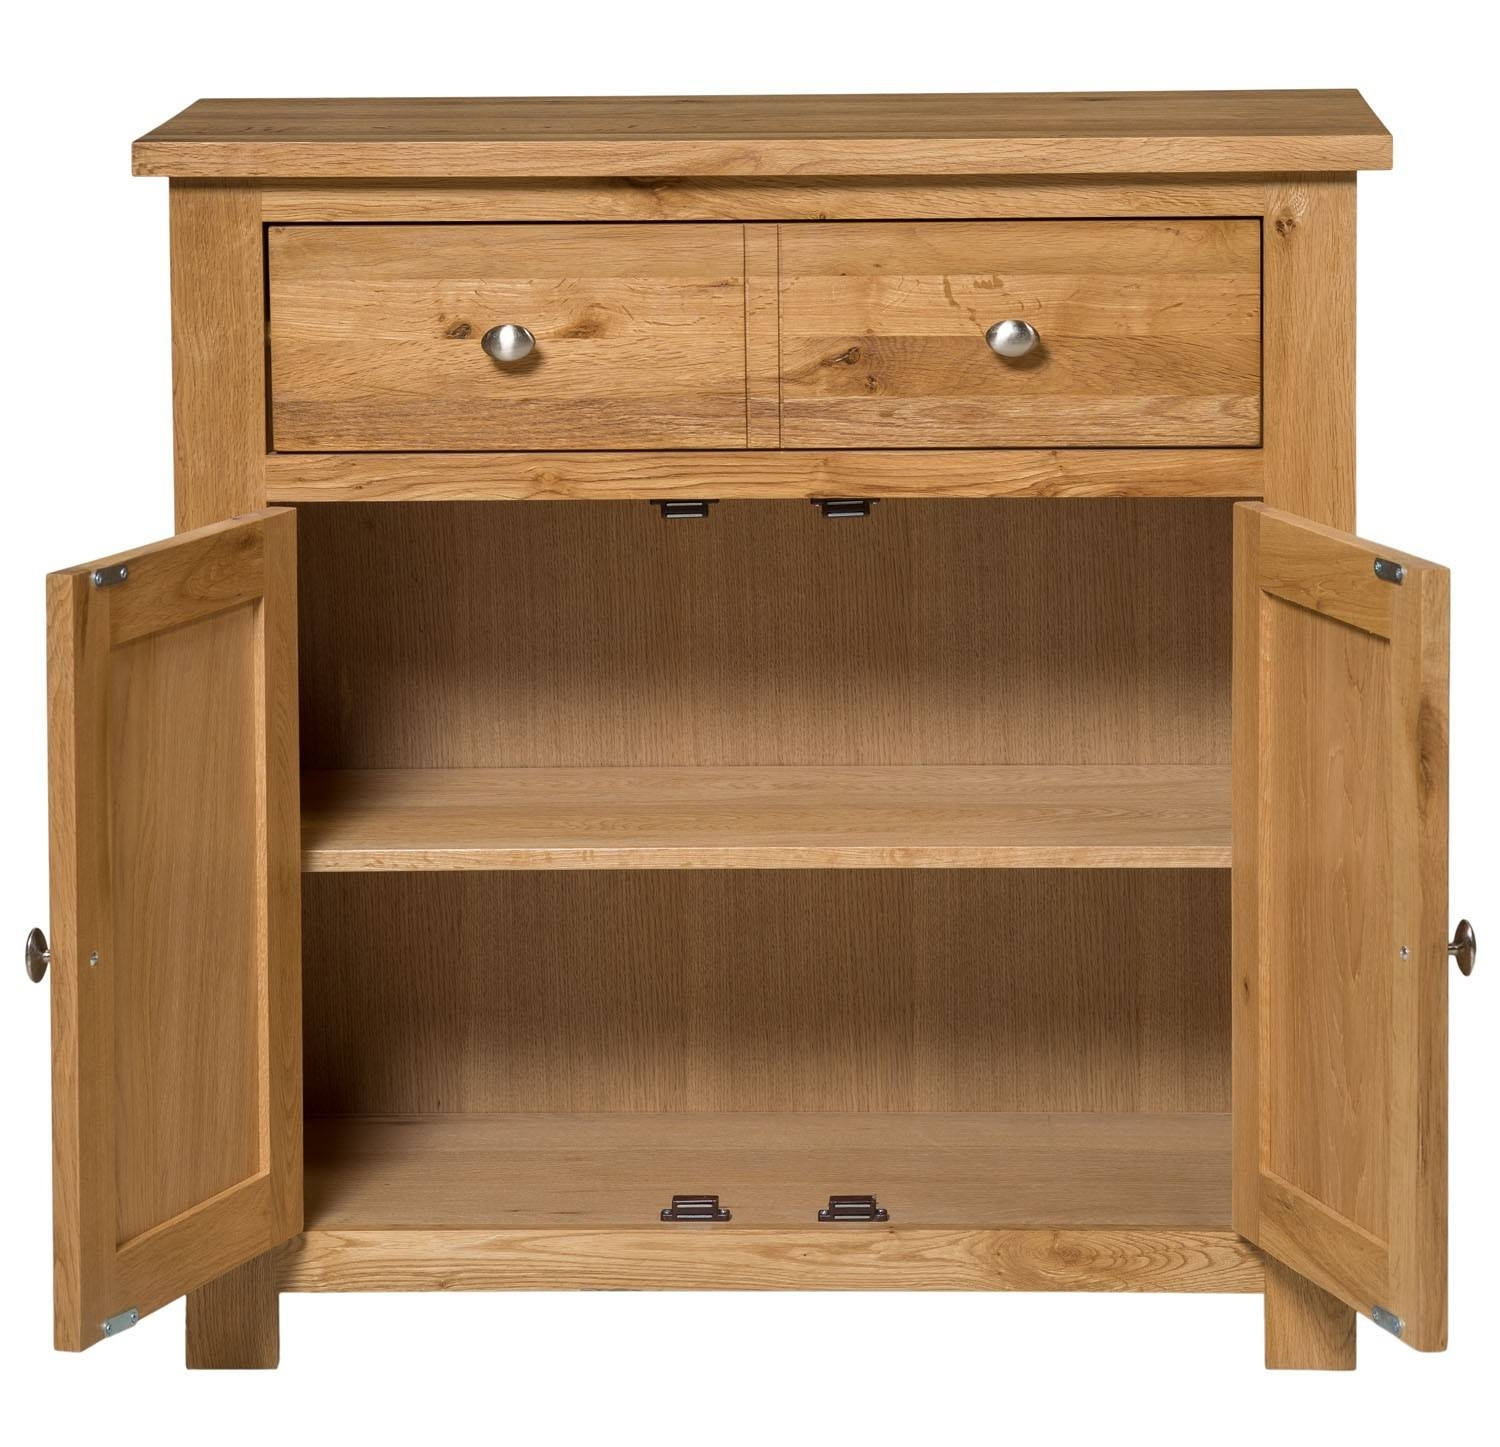 Waverly Oak Compact Sideboard 2 Doors 1 Drawer   Hallowood With Regard To Light Oak Sideboards (View 17 of 20)